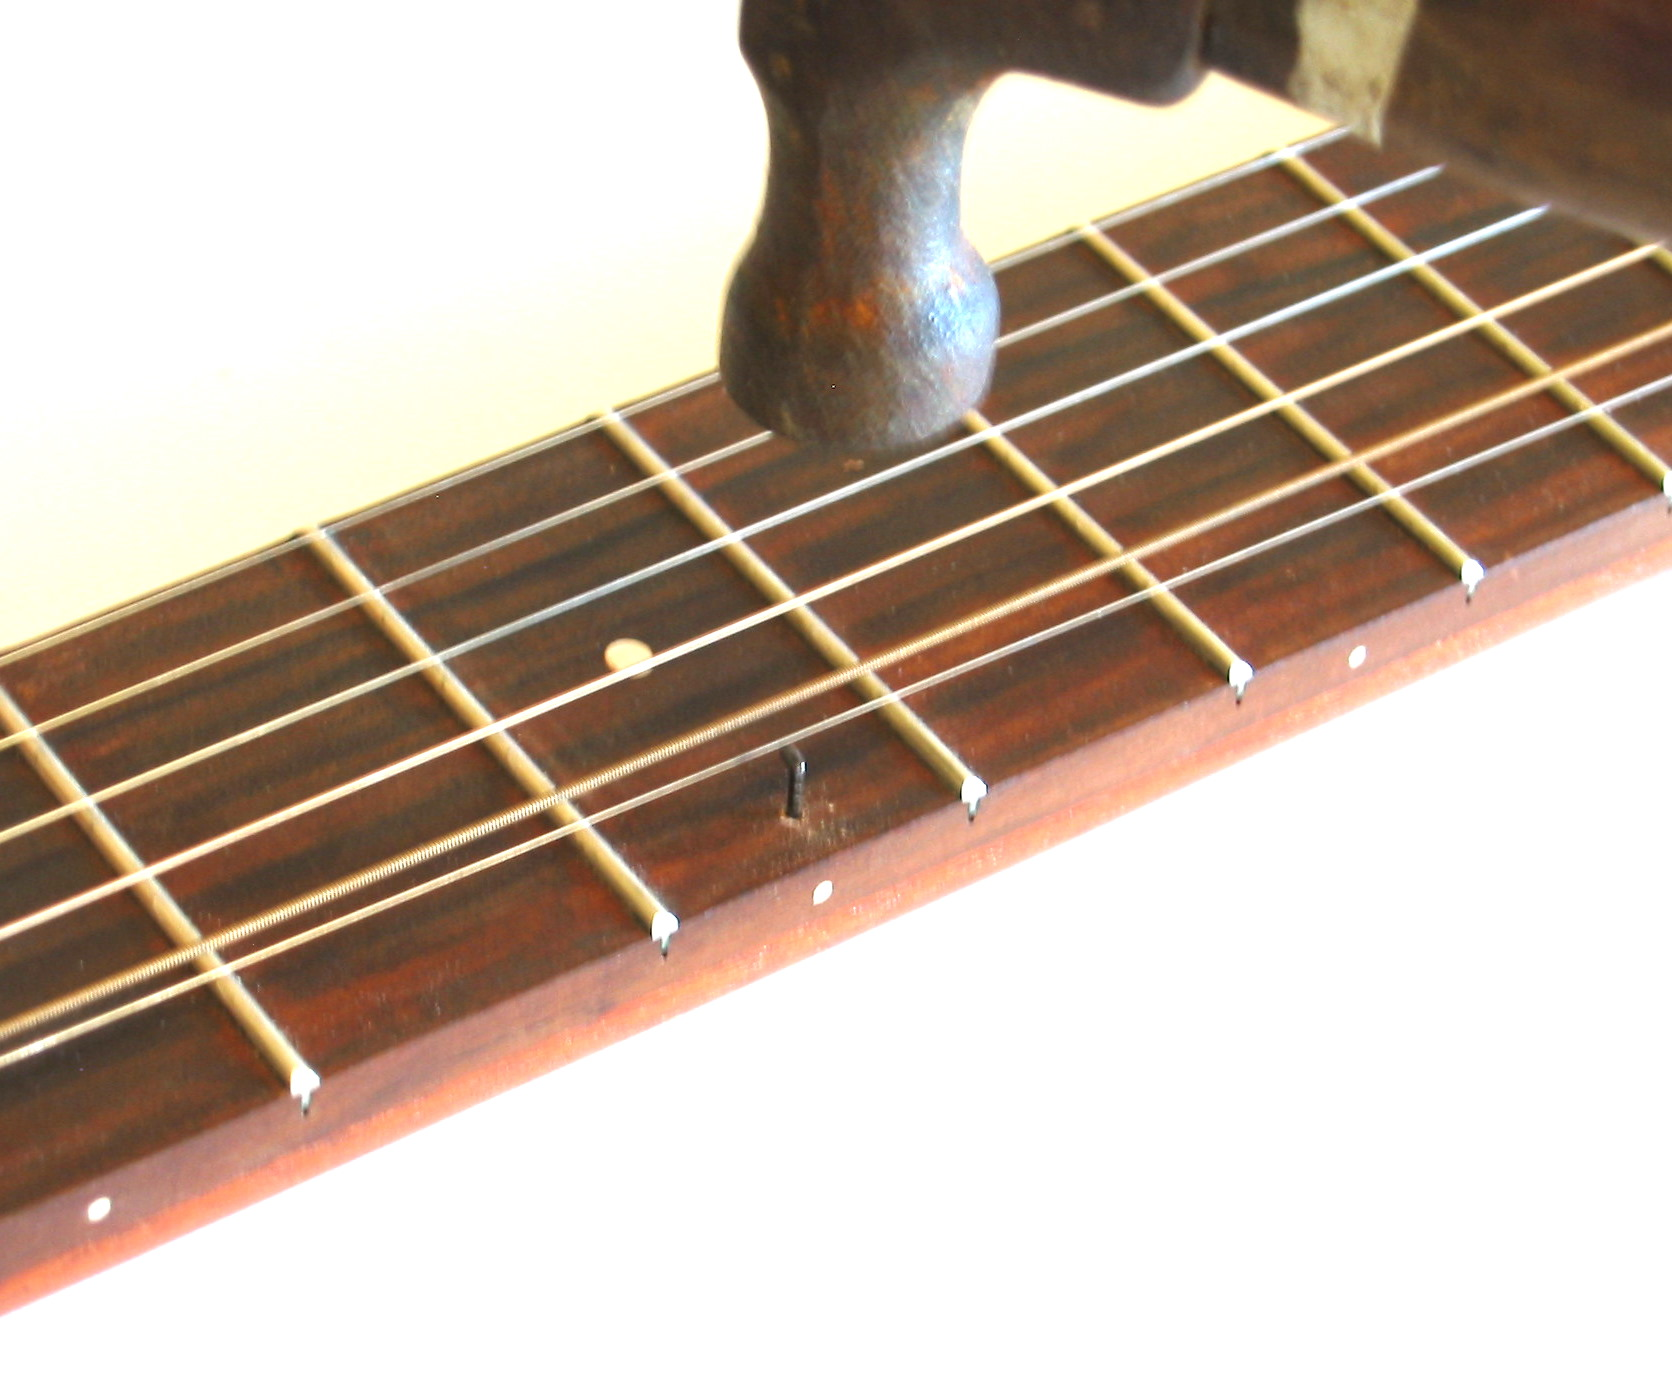 Railroad Spike Capo for your Guitar or Banjo